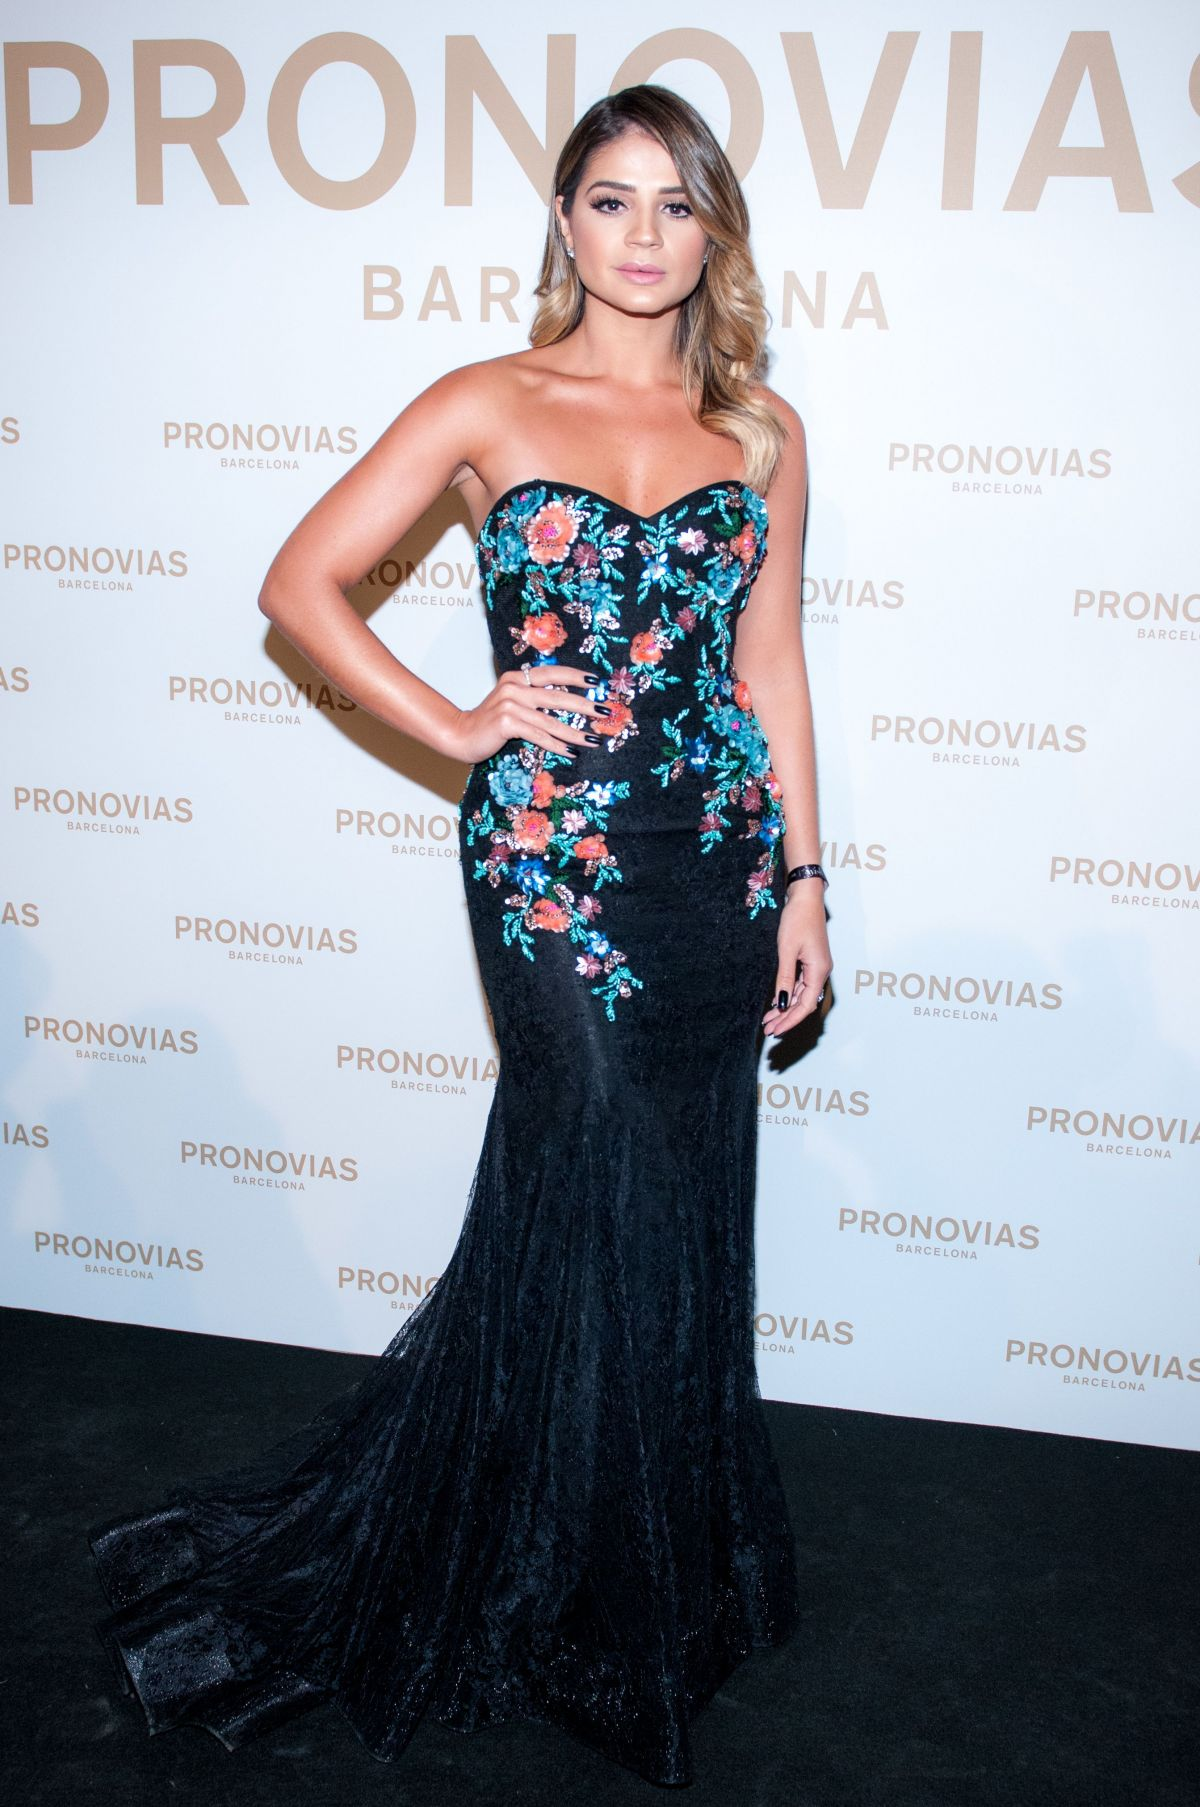 THASSIA NAVES at Barcelona Photocall at Pronovias Catwalk Show 04/28/2017